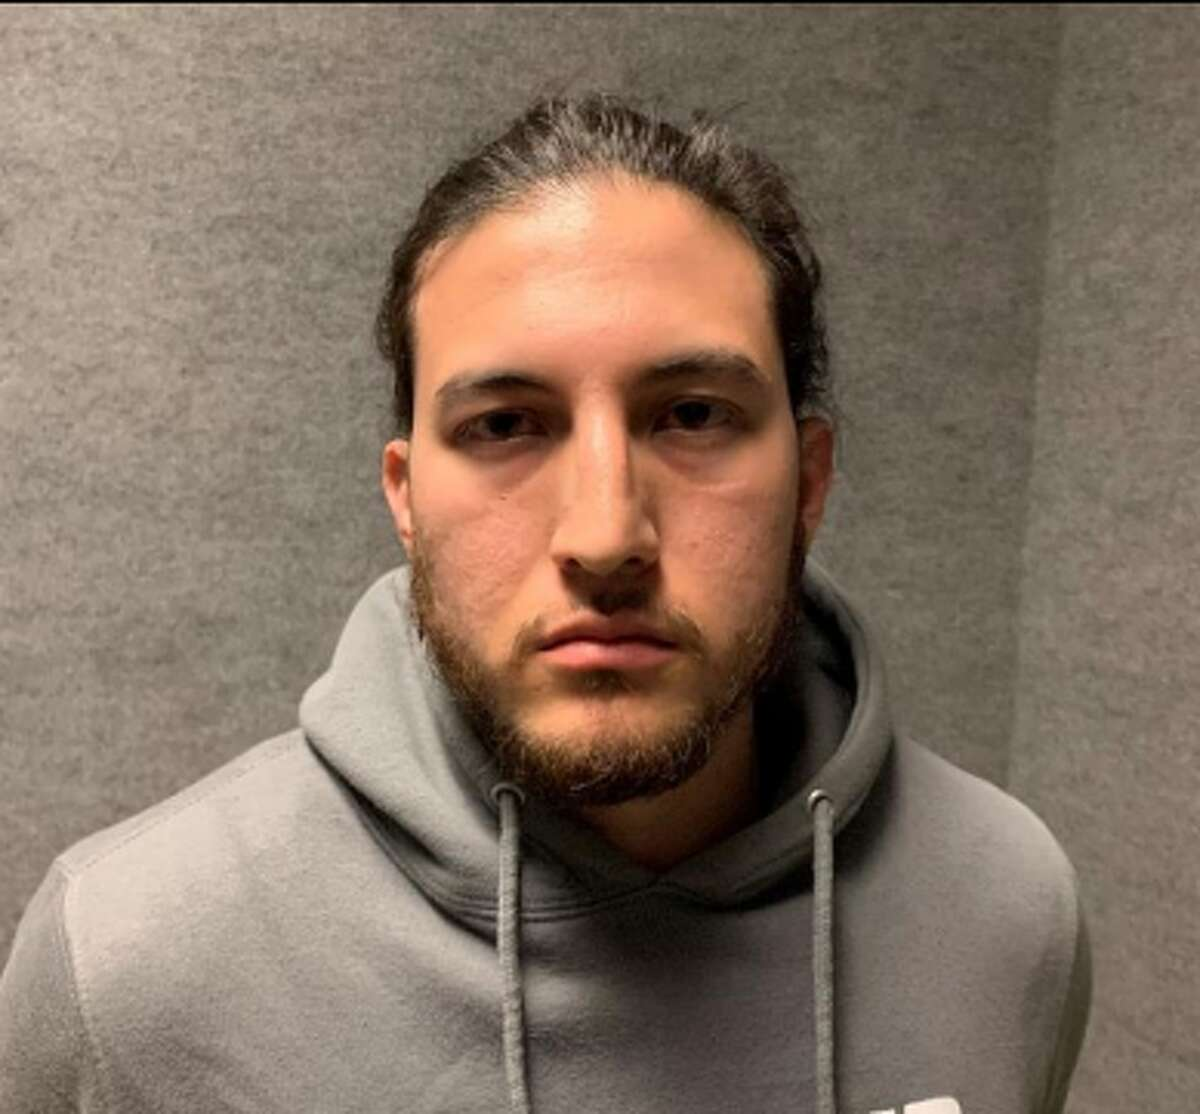 Joel Angel Zaragoza was charged Tuesday with failure to stop and render aid resulting in death after a resident reported his damaged car.